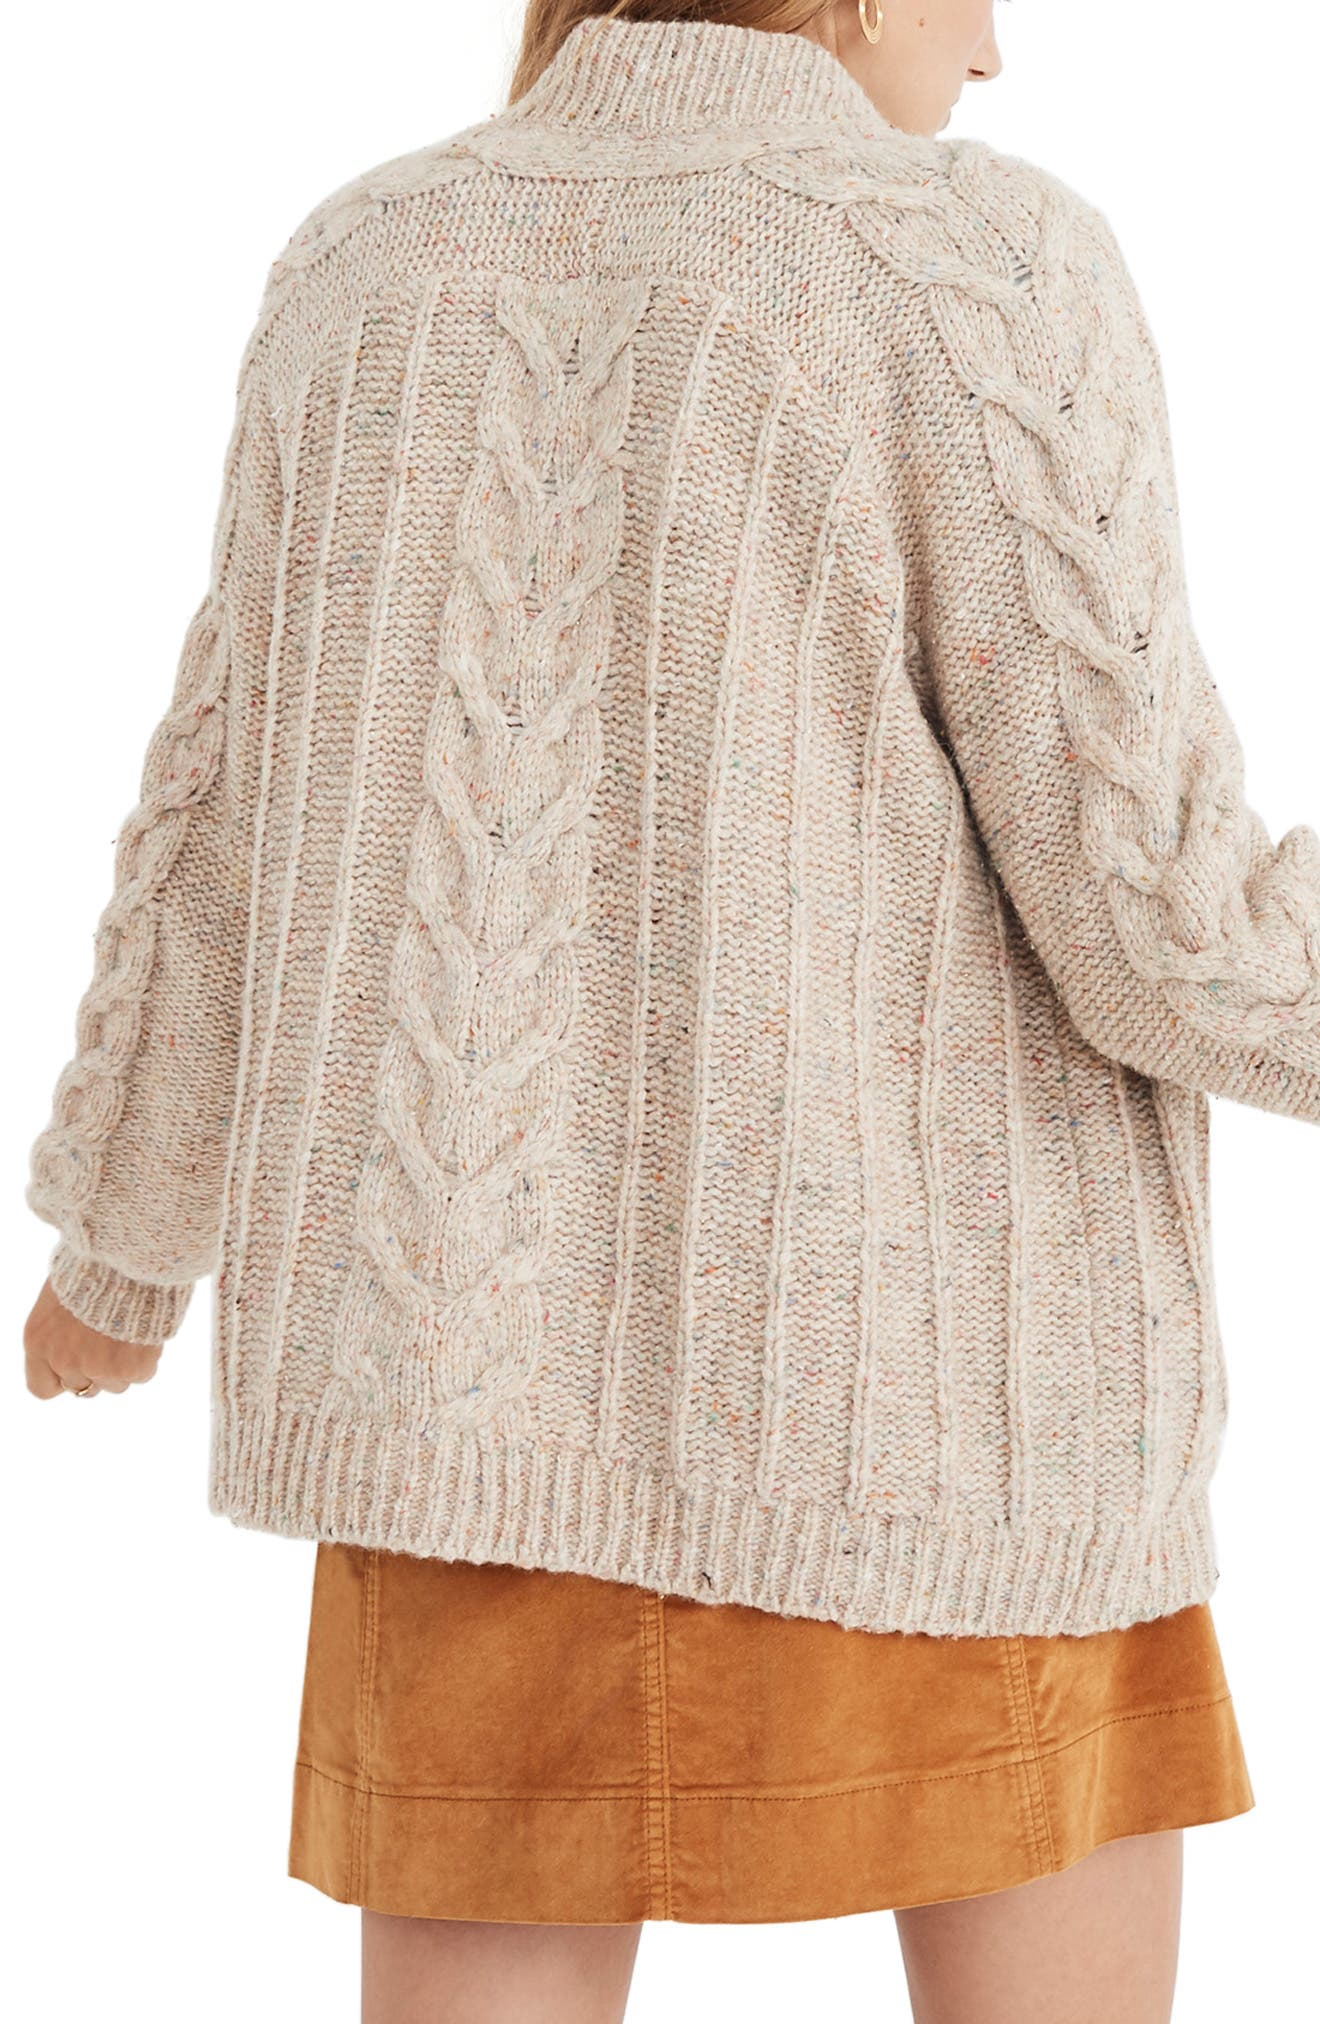 Bubble Sleeve Cable Knit Cardigan Sweater,                             Alternate thumbnail 2, color,                             DONEGAL FUNFETTI